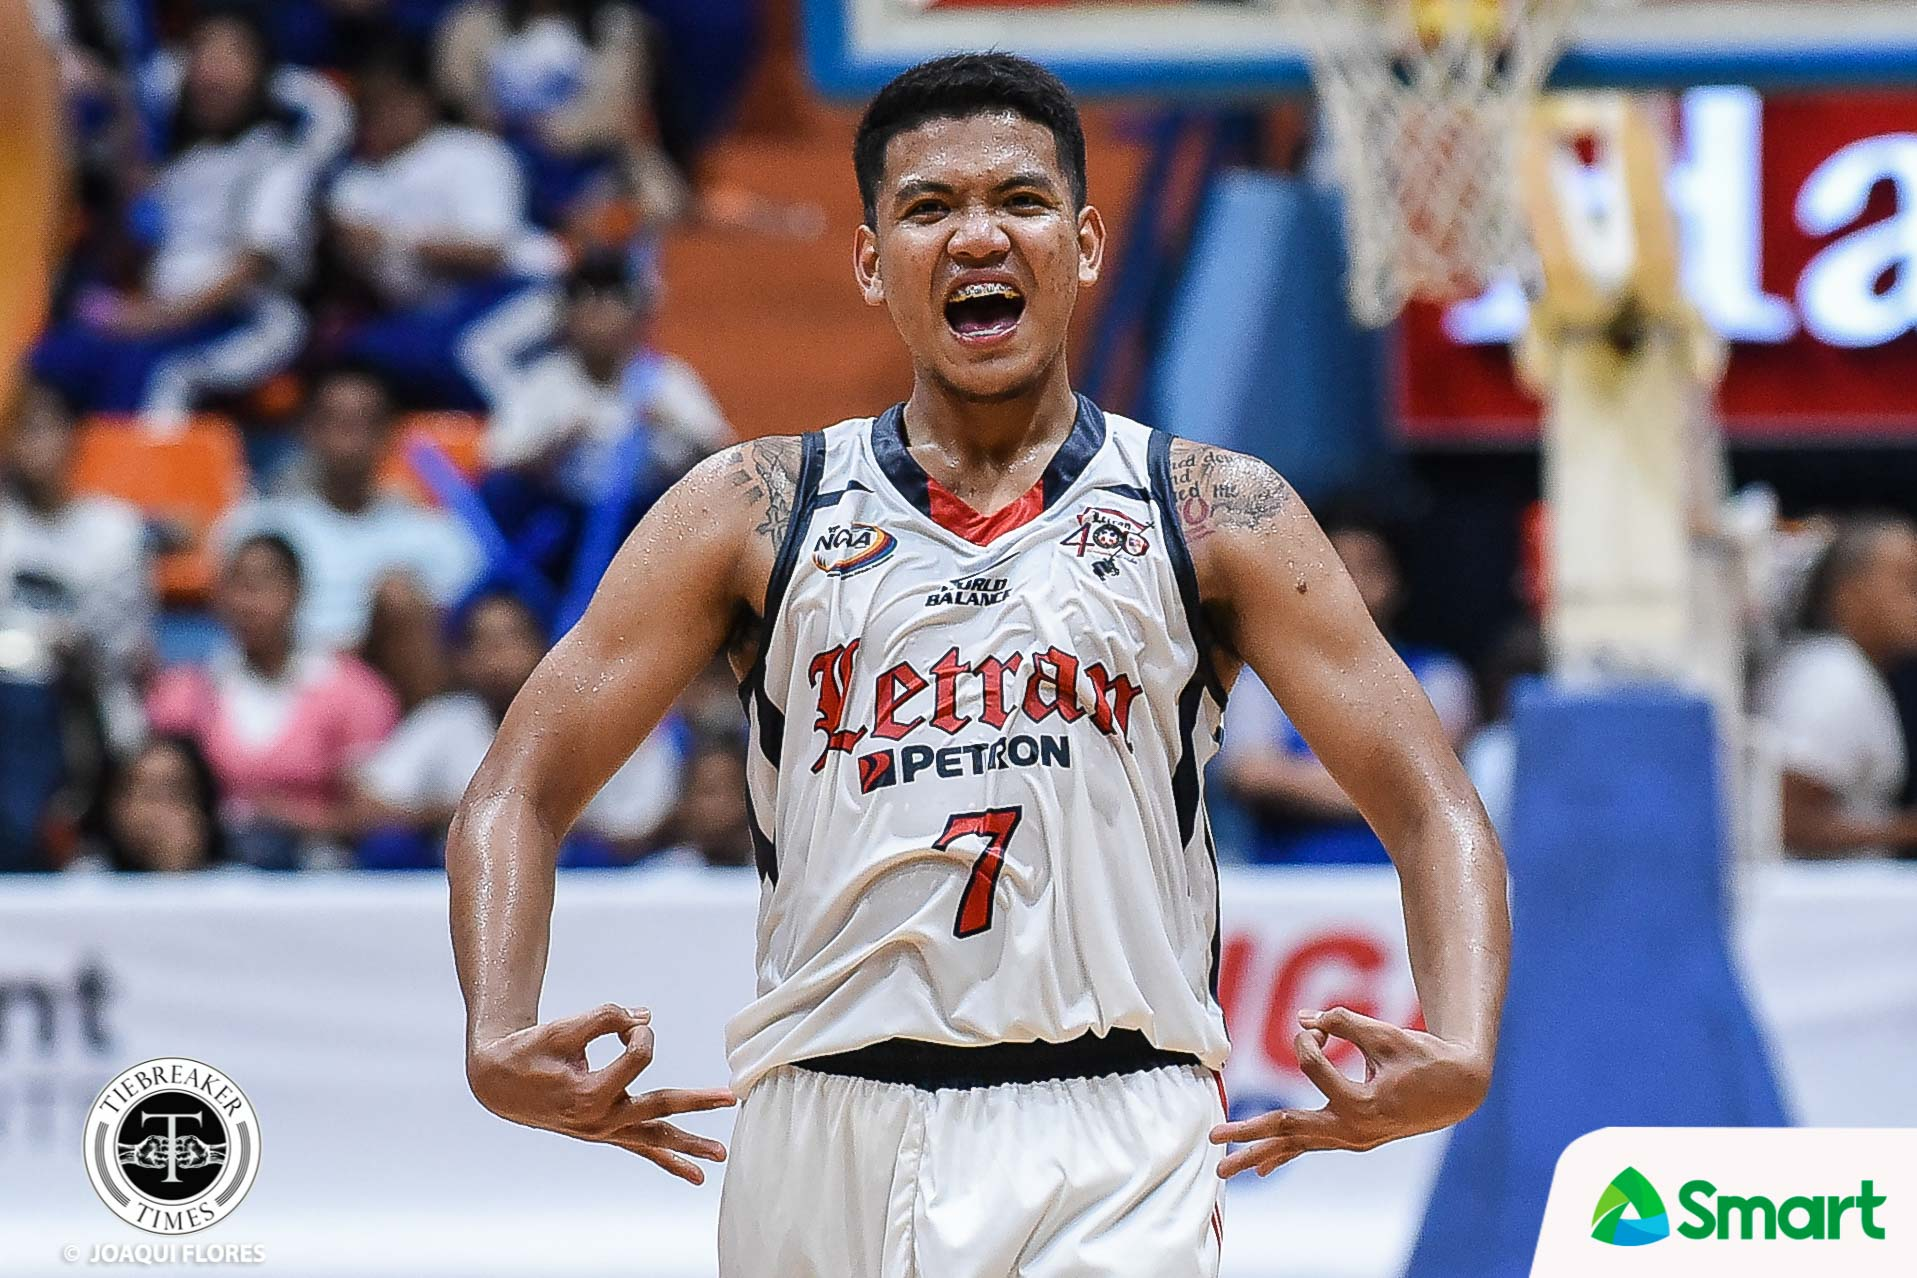 Tiebreaker Times Jerrick Balanza notches career-high, single-handedly lifts Letran past Arellano AU Basketball CSJL NCAA News  Rence Alcoriza NCAA Season 95 Seniors Basketball NCAA Season 95 Letran Seniors Basketball Justin Arana Jerrick Balanza Jeo Ambohot Cholo Martin Arellano Seniors Basketball Alfren Gayosa